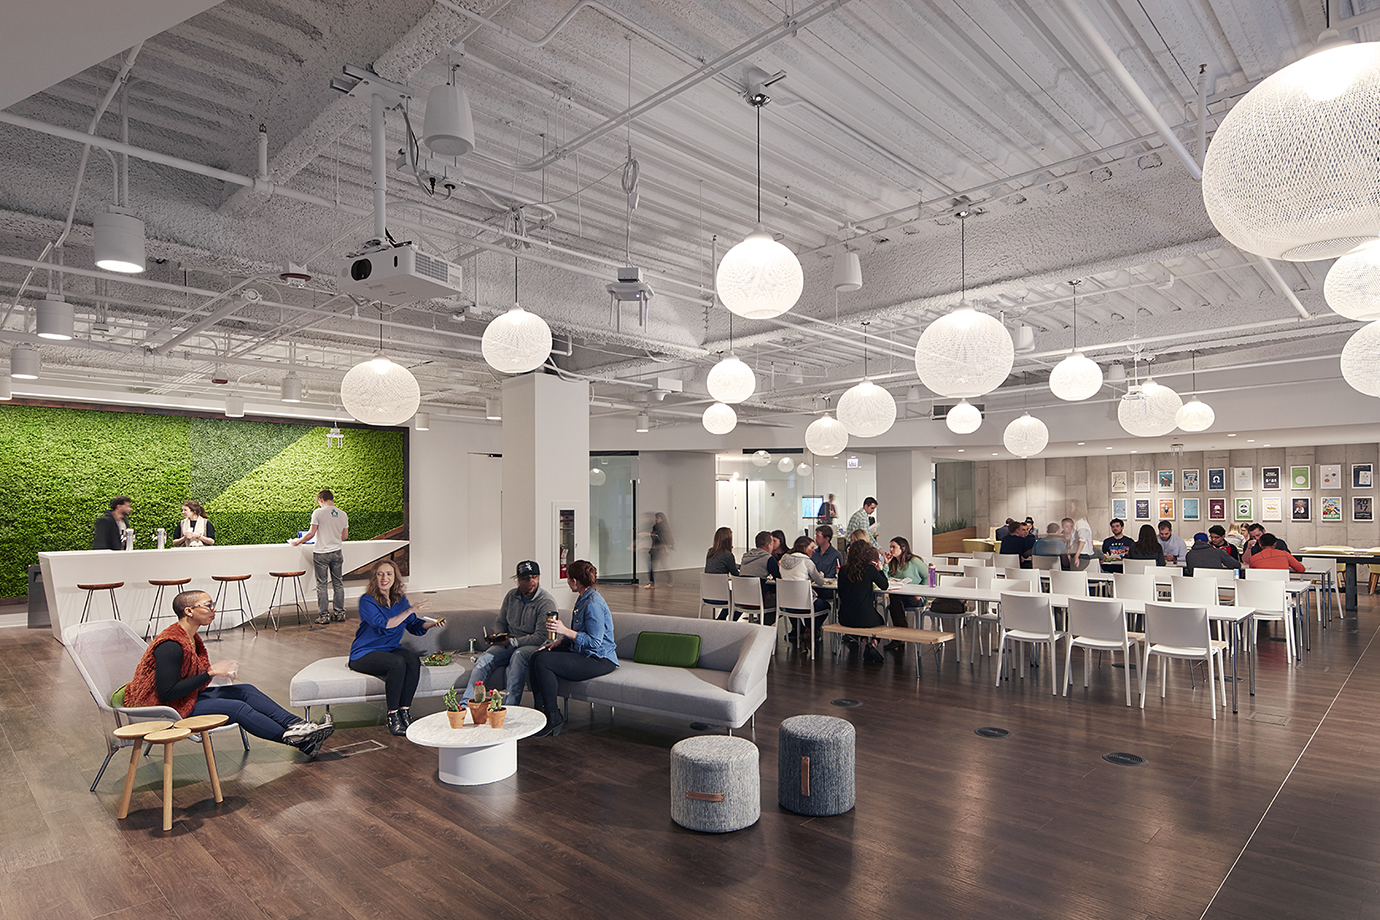 Many people in a large, open office space.